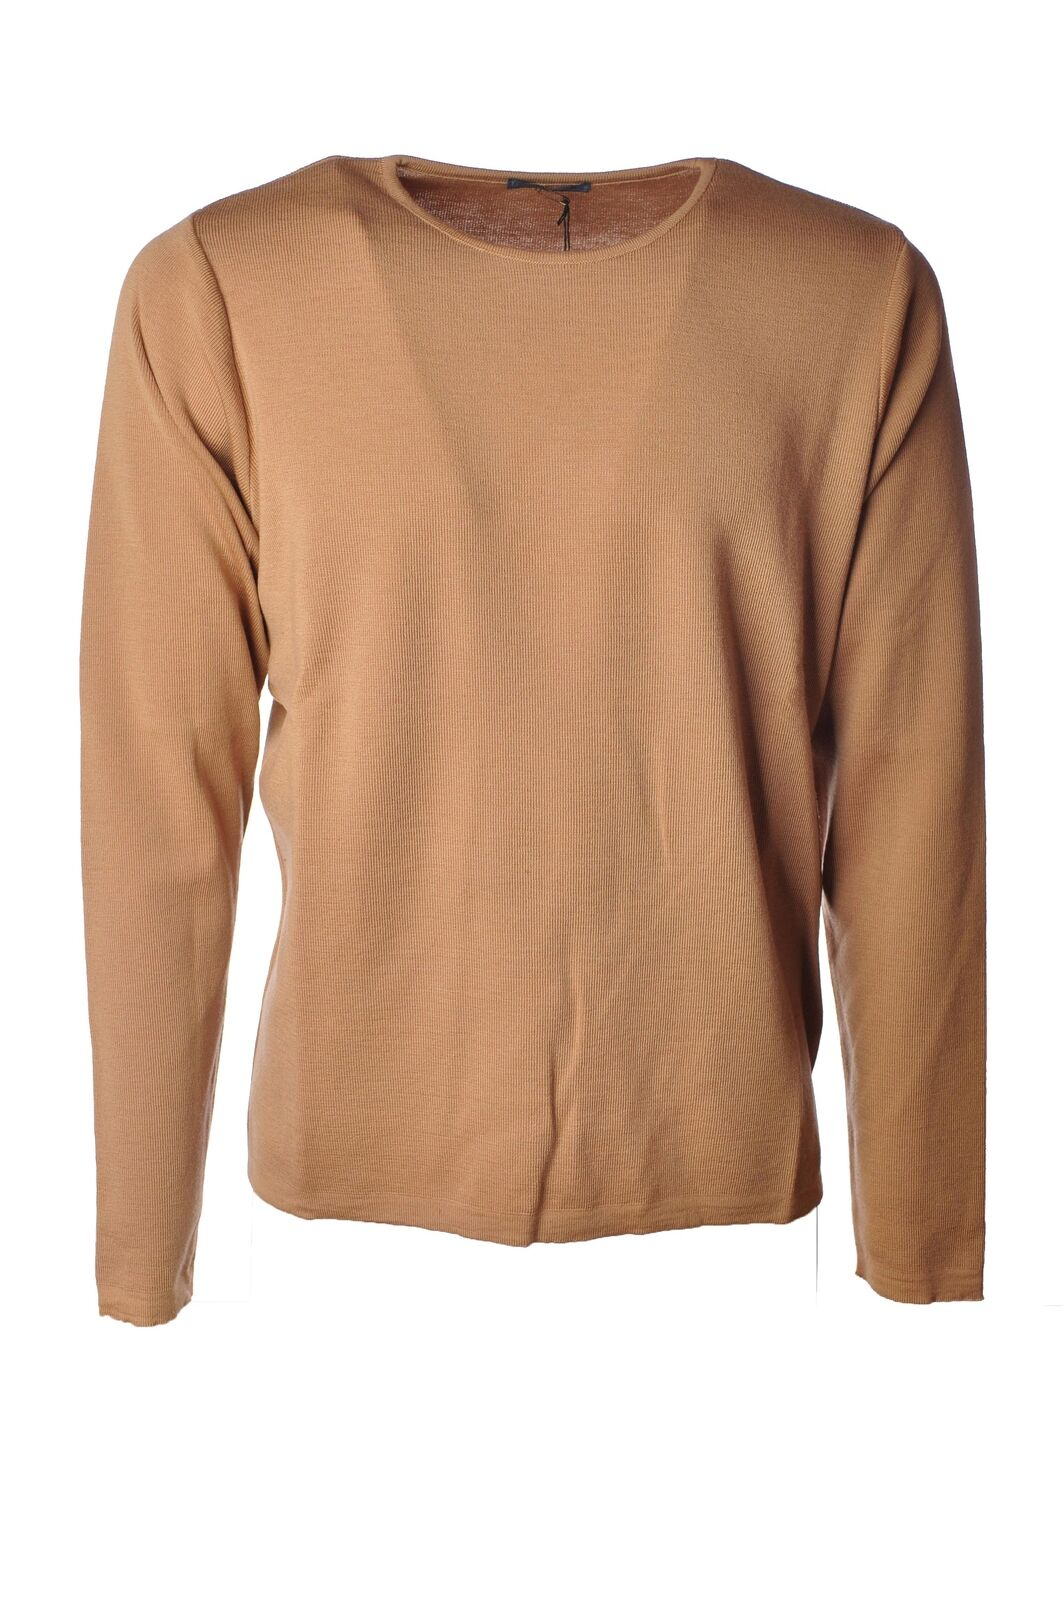 Paolo Fumagalli  -  Sweaters - Male - Beige - 4163428A184557